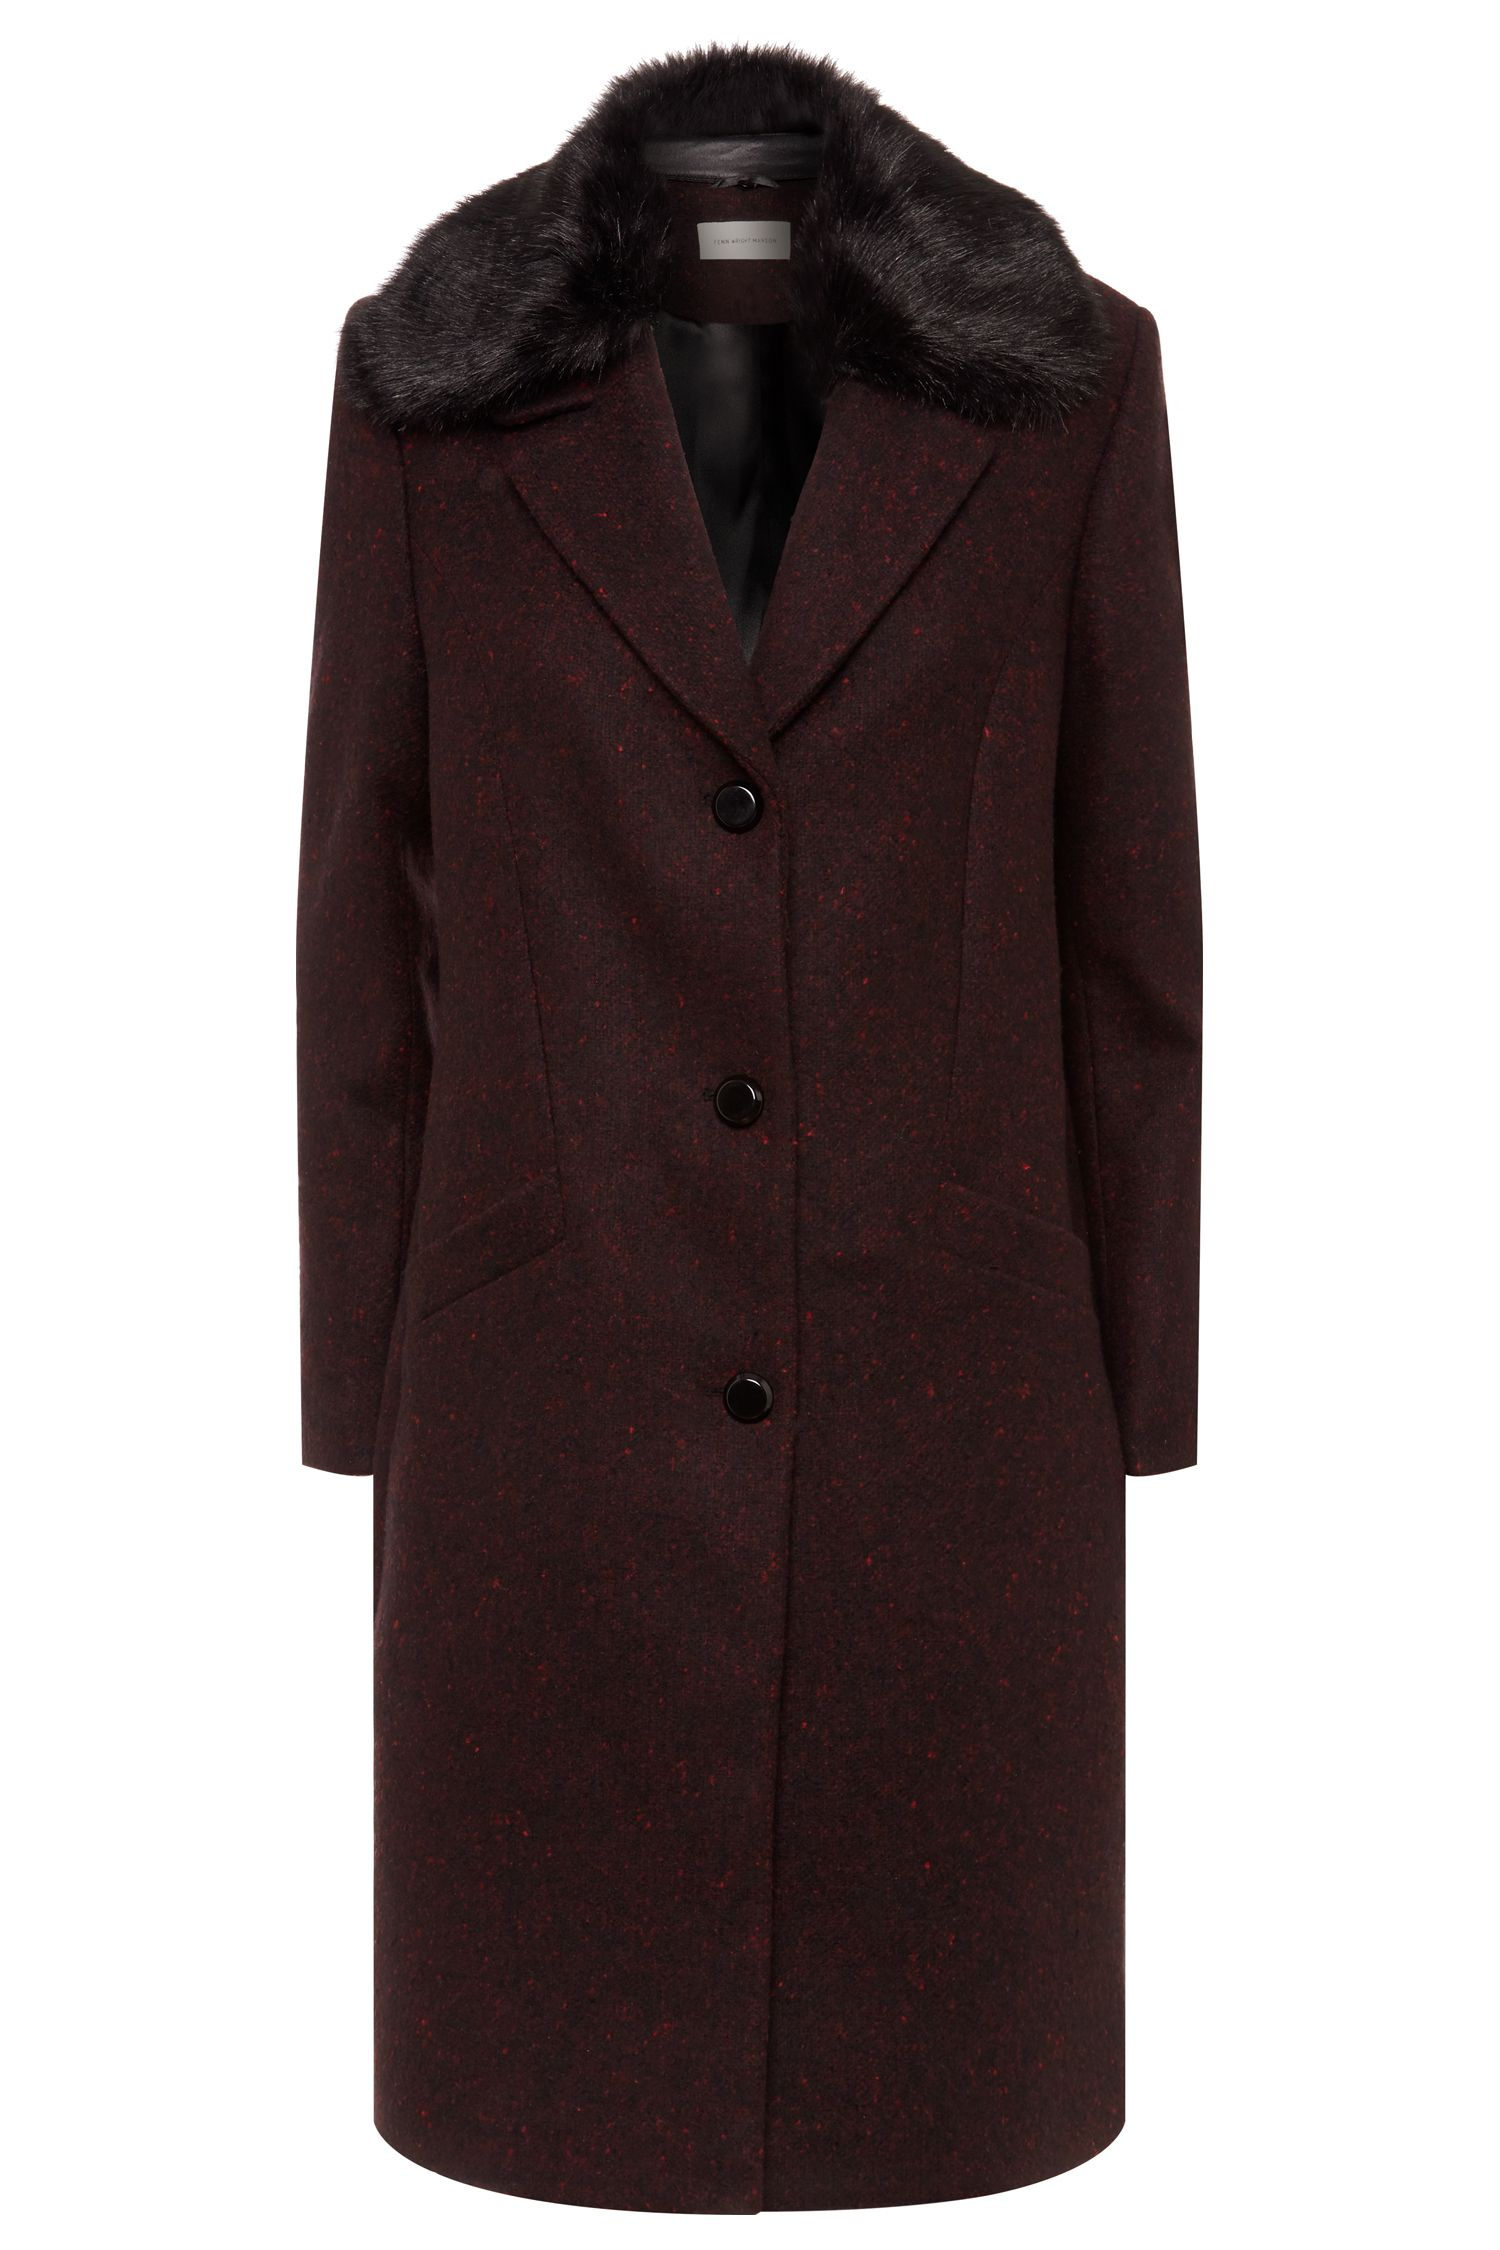 1920s Style Coats Fenn Wright Manson Adorn Coat Red £219.00 AT vintagedancer.com